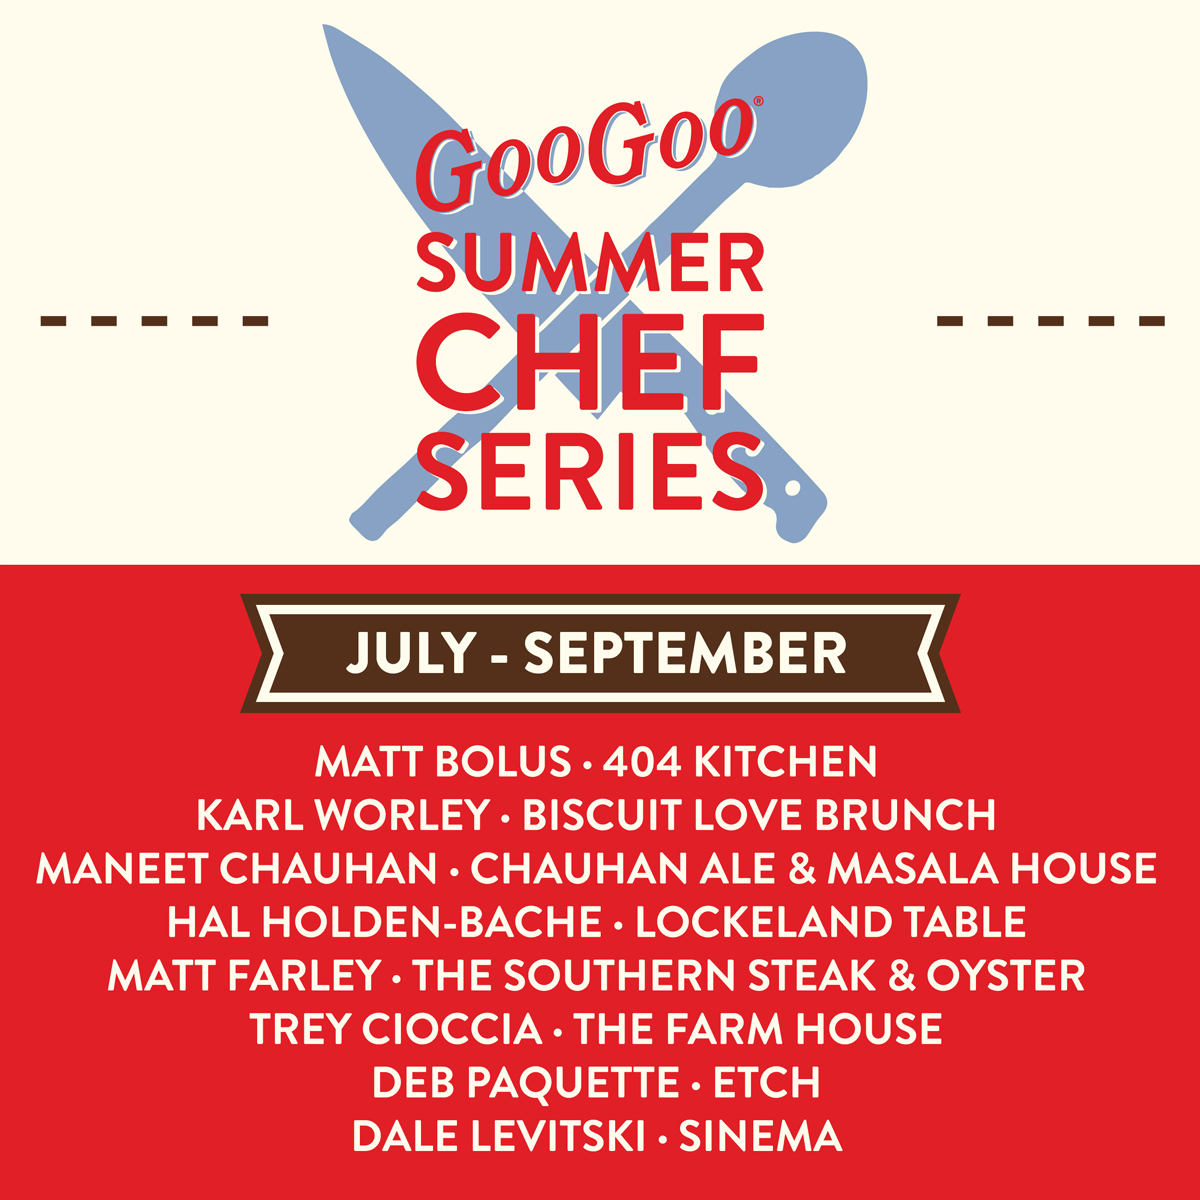 Announcing the Goo Goo Summer Chef Series Image